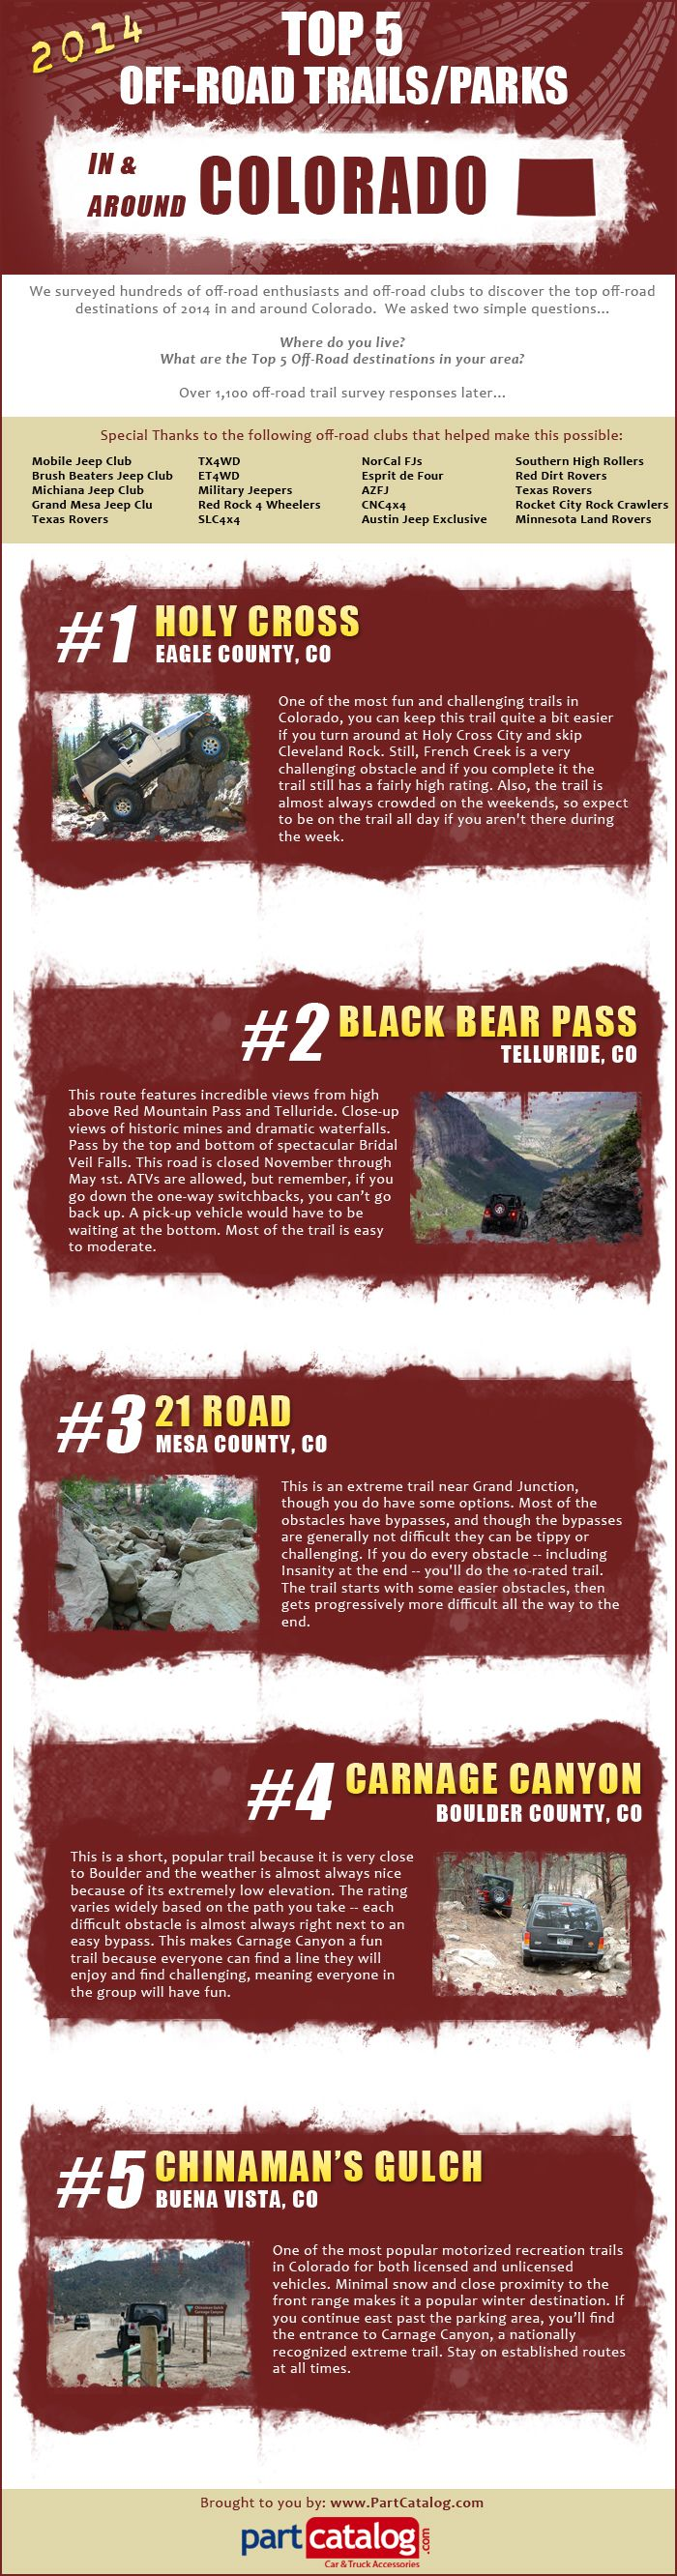 PartCatalog surveyed off-road fanatics far and wide across the Rocky mountains of Colorado to find the best off-road trails. We compiled everyone's votes to form the 2014 Top 5 Off-Roads Trails/Parks In and Around Colorado.  http://www.partcatalog.com/blog/2014-top-off-road-trails-in-america/colorado/  Top 5 #OffRoad #Trails - #Colorado